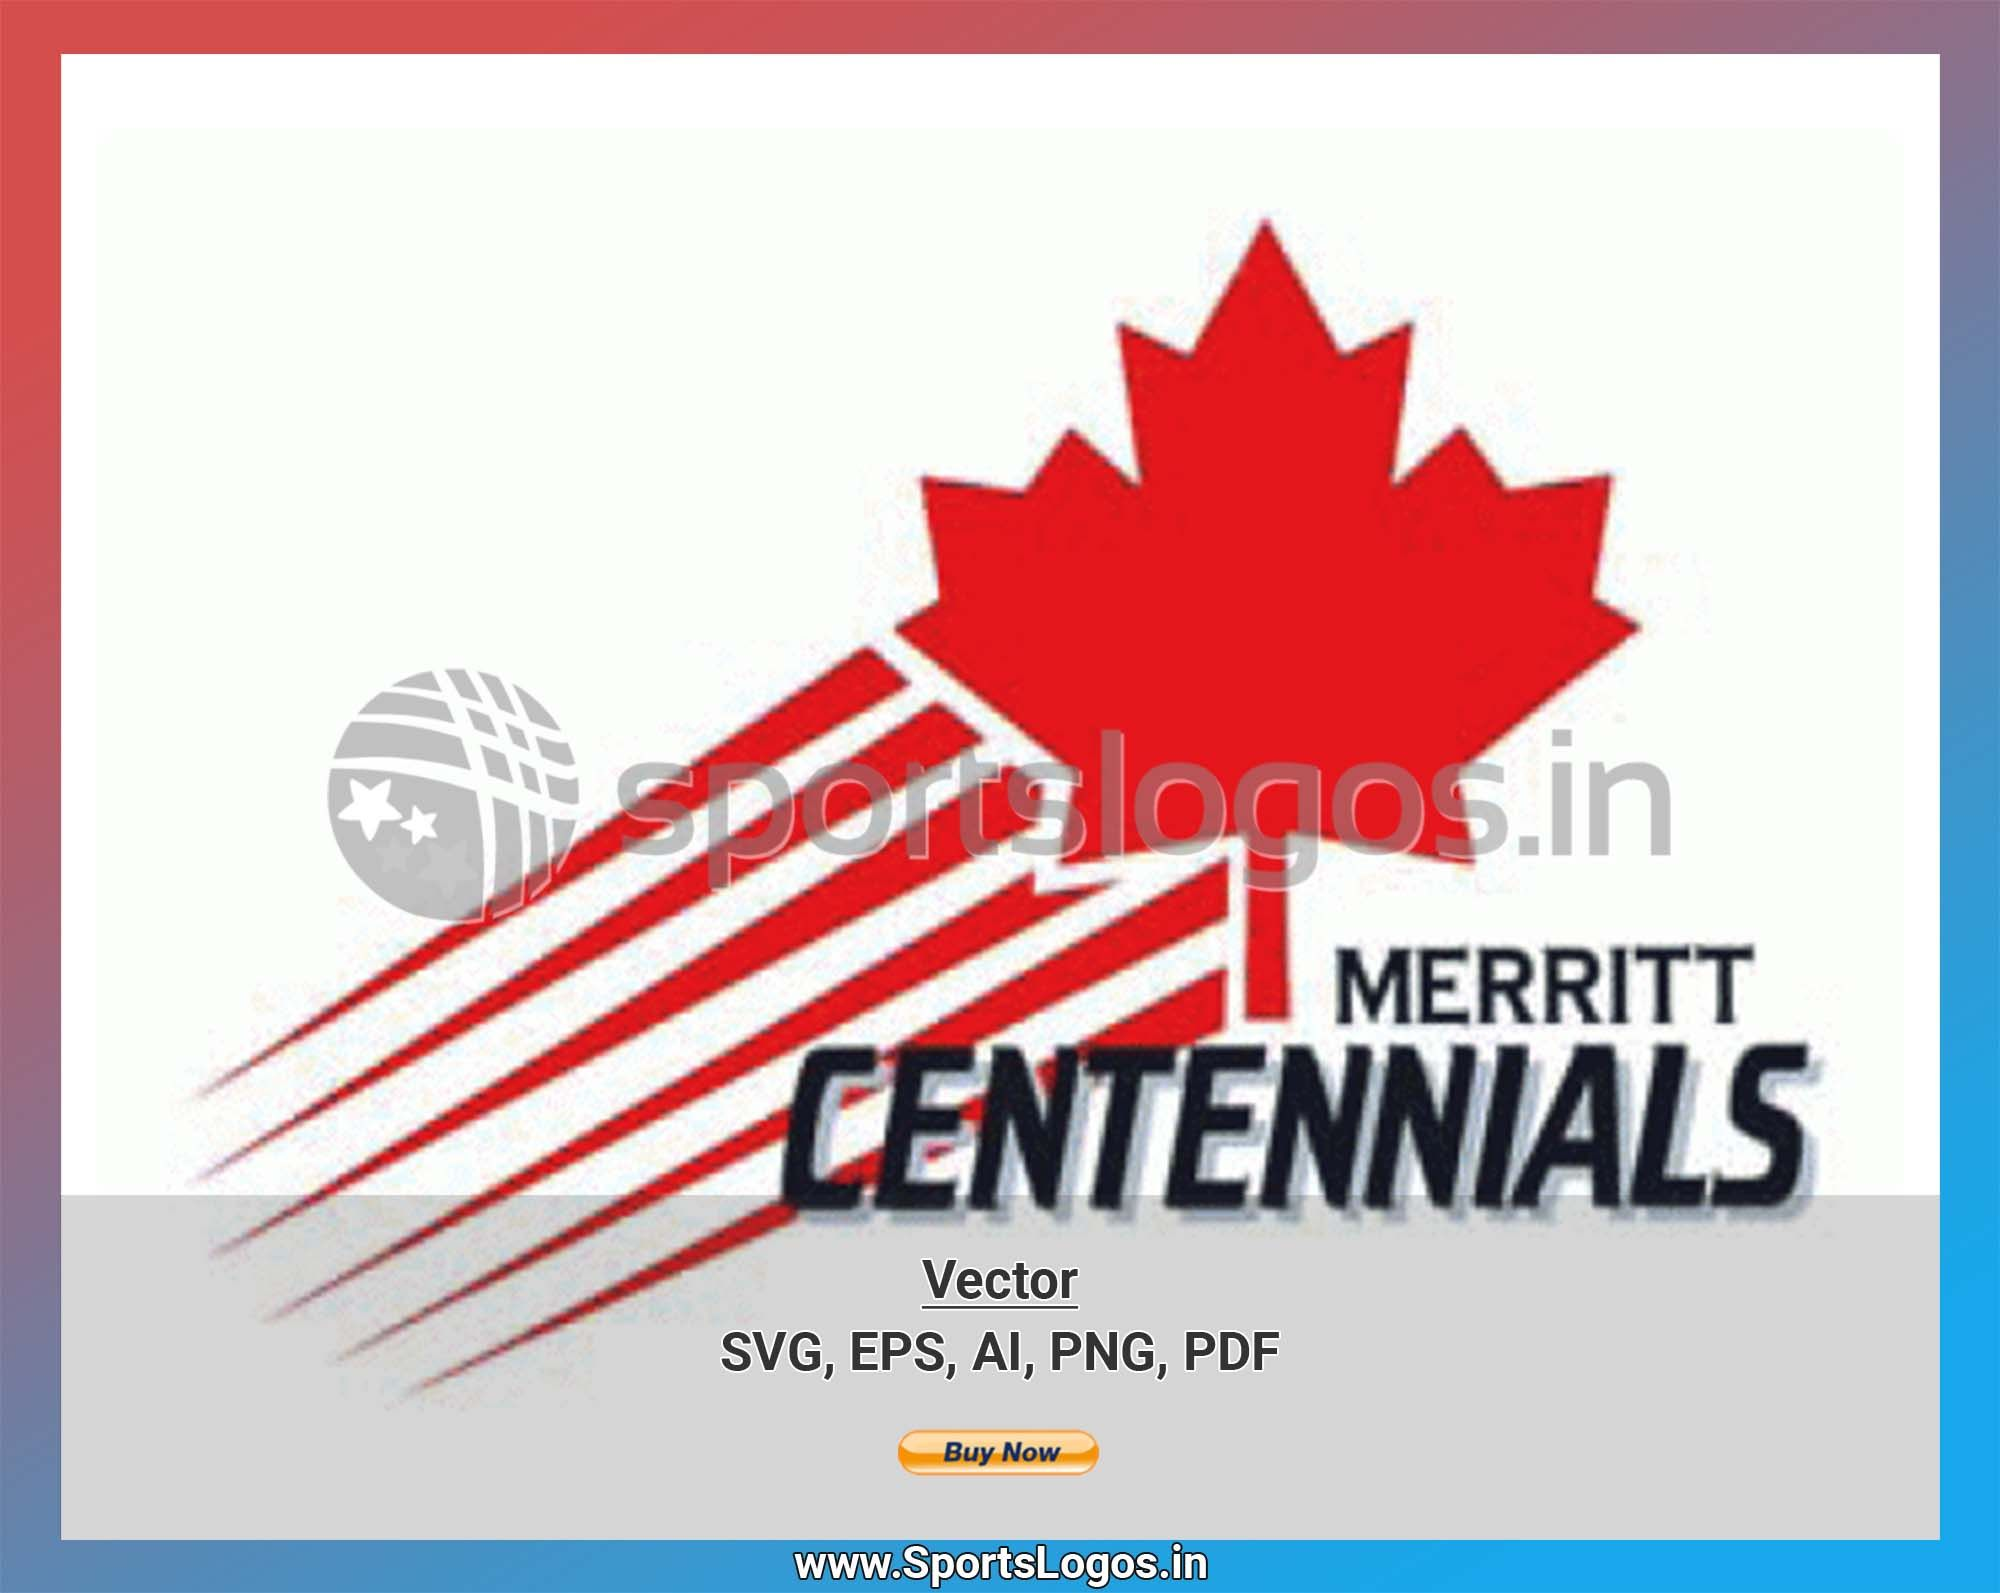 Merritt Centennials Hockey Sports Vector Svg Logo In 5 Formats Spln002596 Sports Logos Embroidery Vector For Nfl Nba Nhl Mlb Milb And More In 2020 Embroidery Logo Sport Hockey Sports Logo